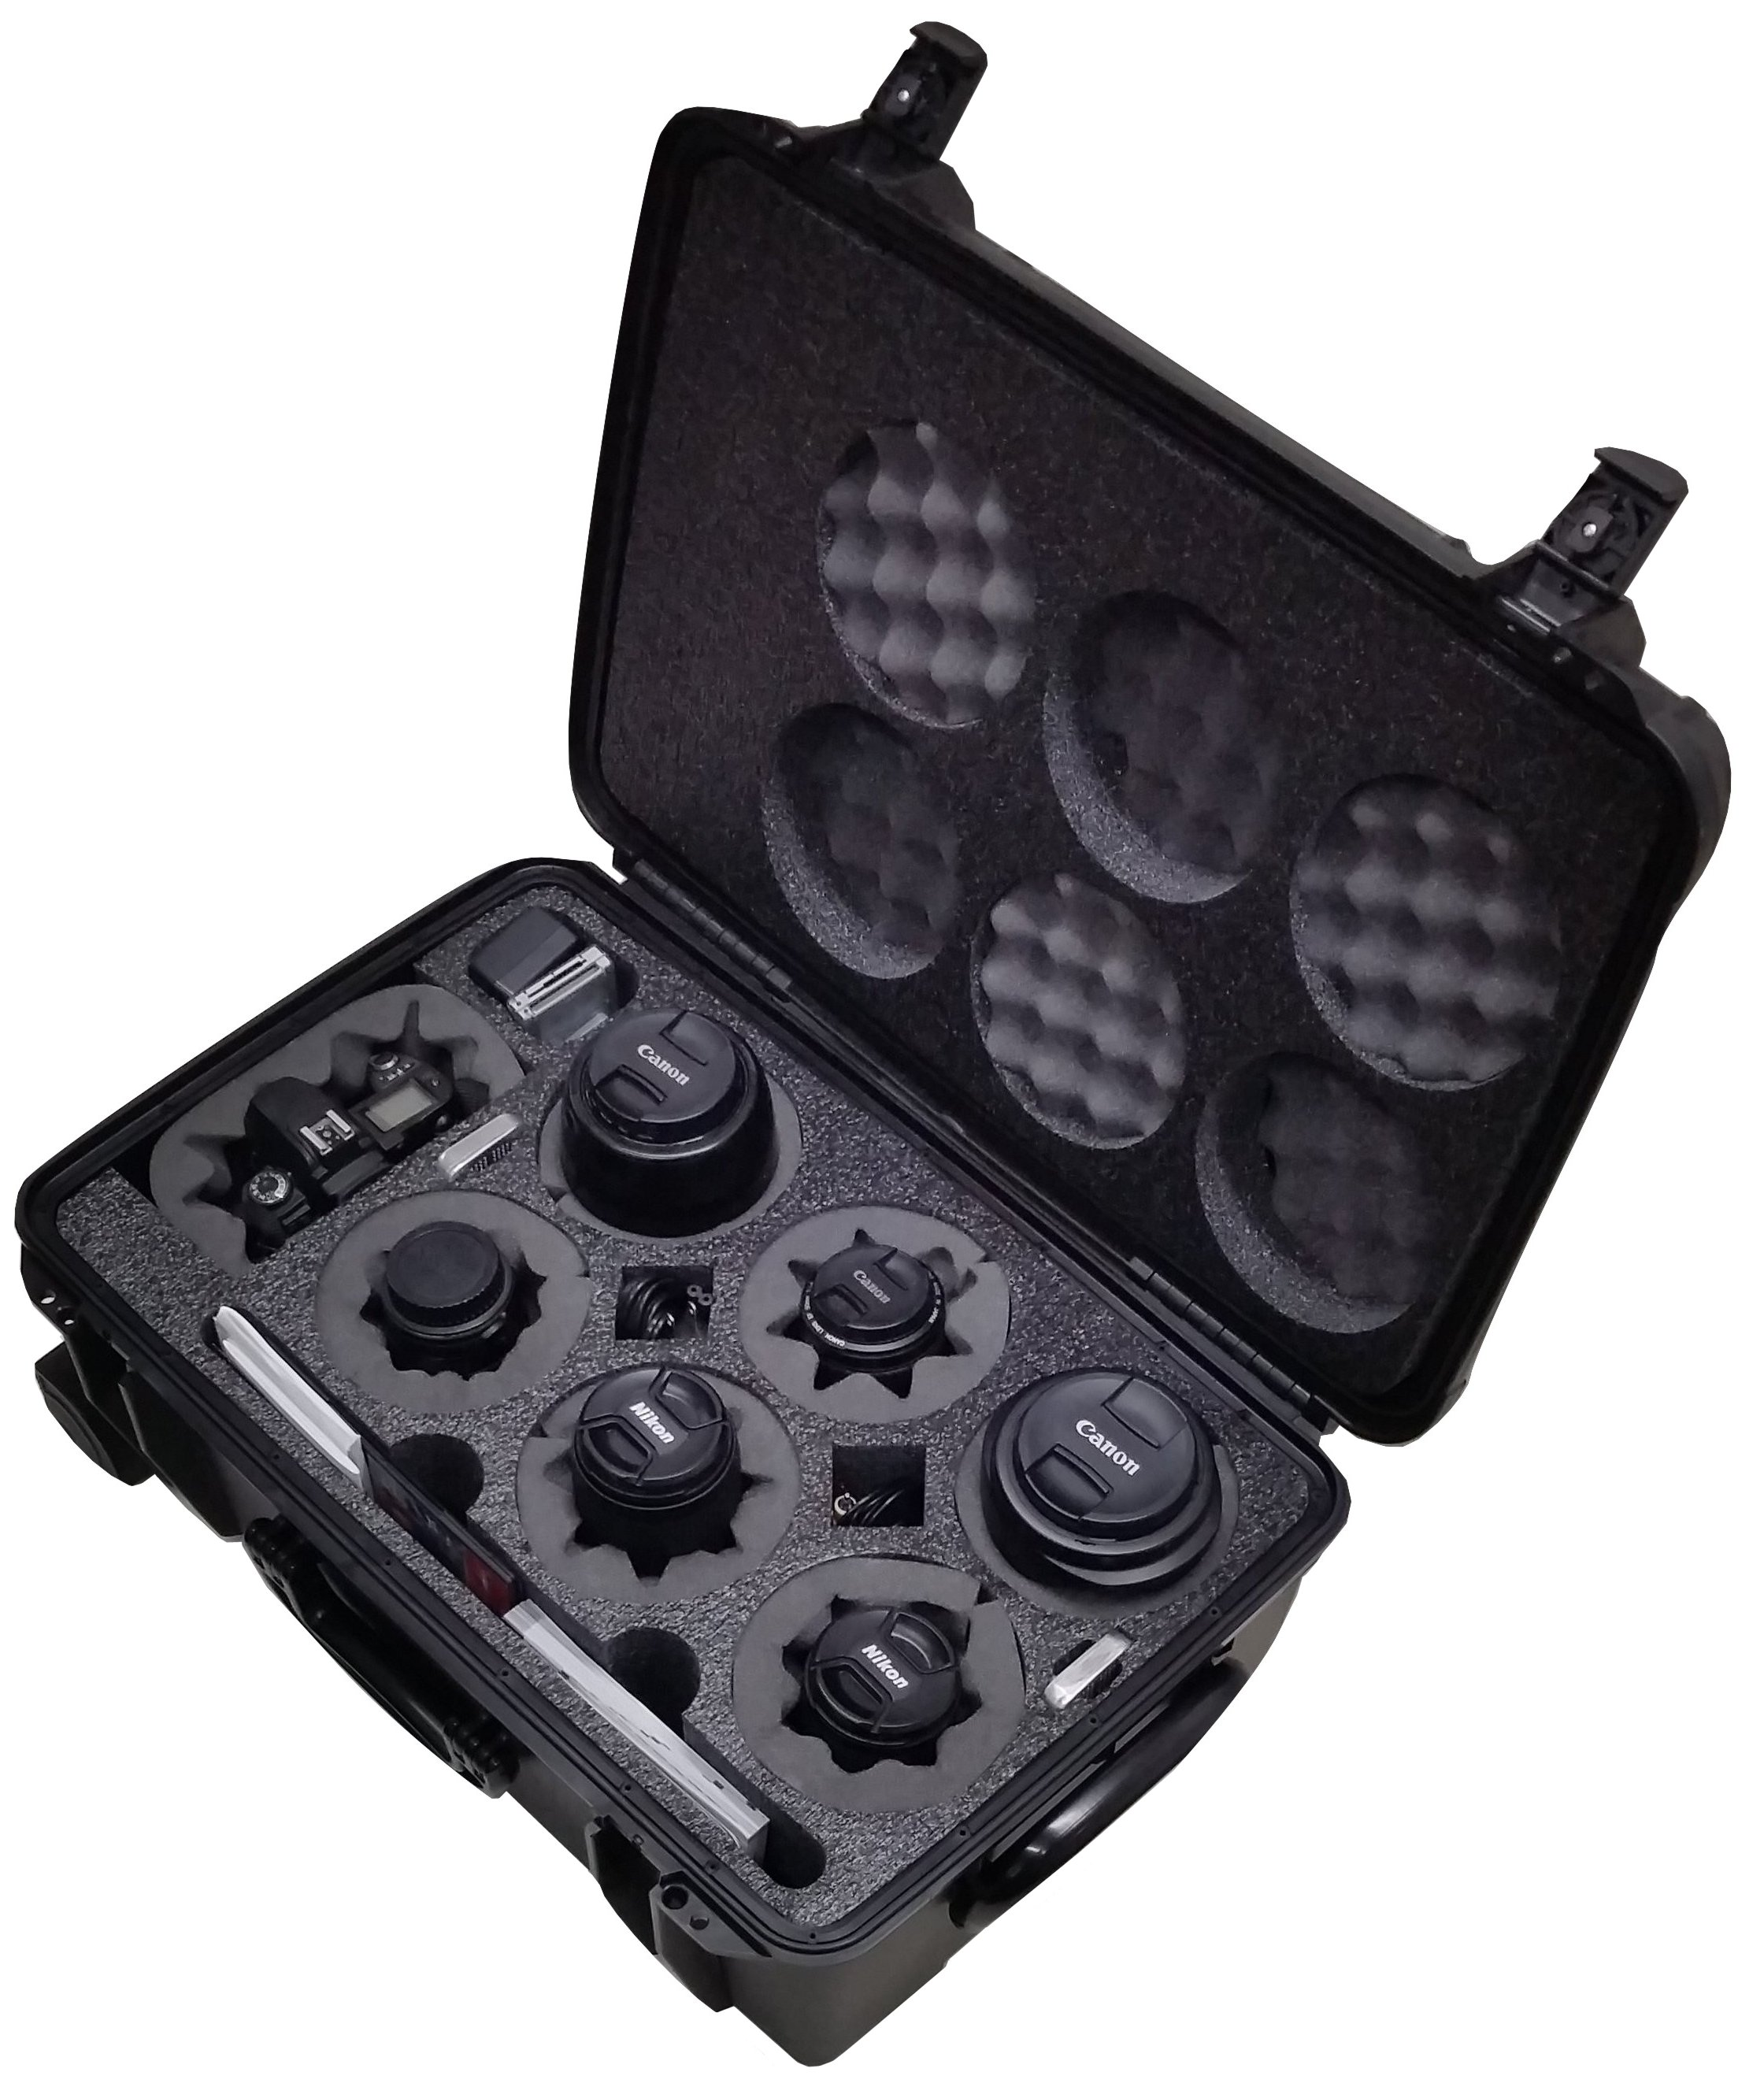 Case Club Waterproof DSLR 6 Lens Camera Case with Included Moisture Absorbing Silica Gel